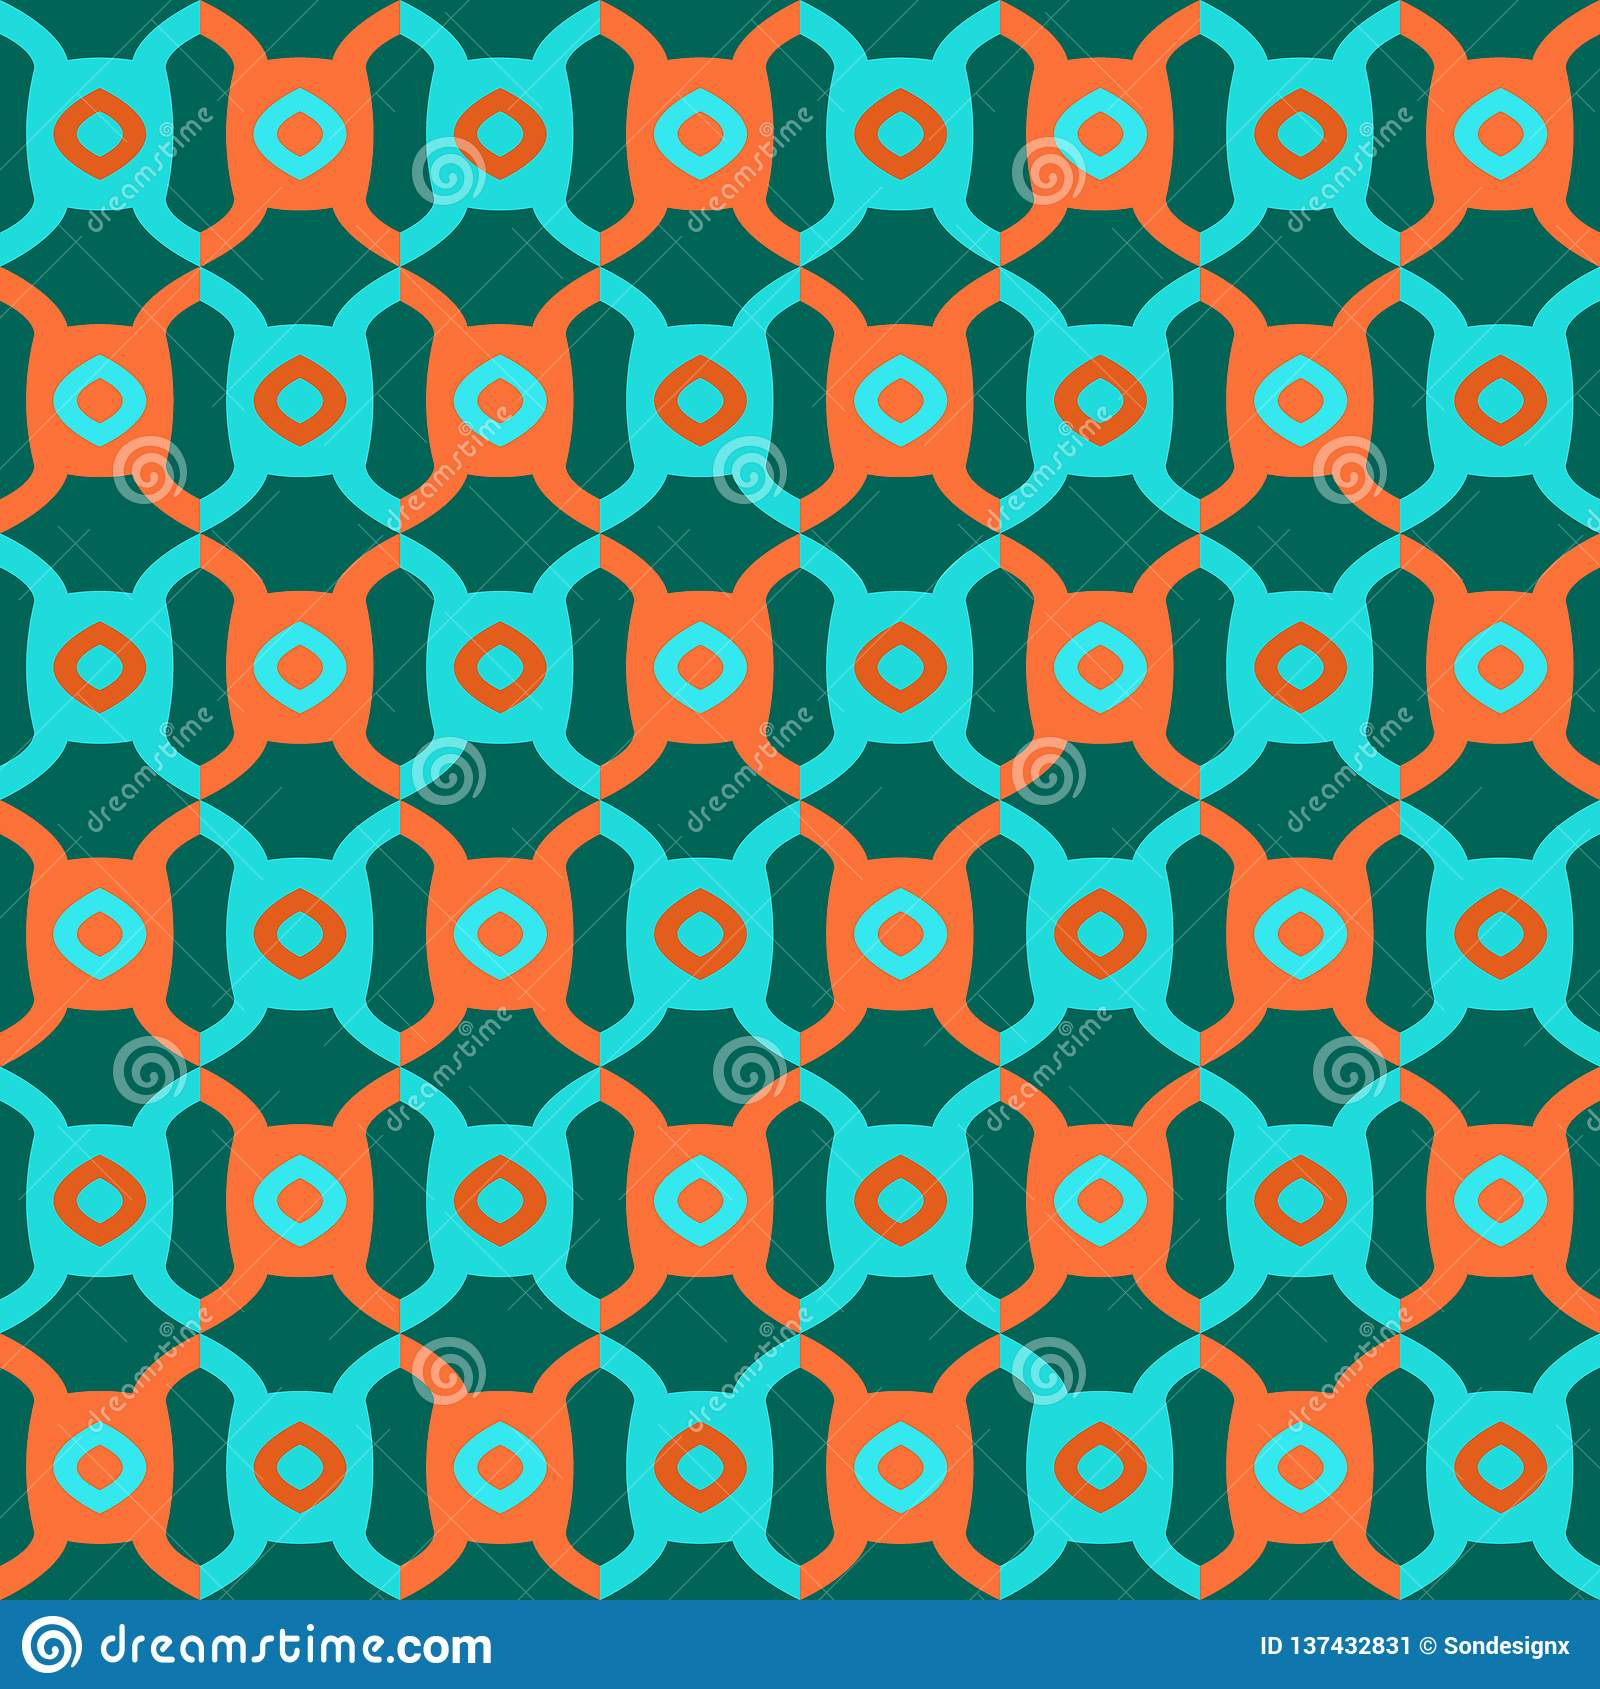 Seamless Geometric Abstract Pattern Vector Background